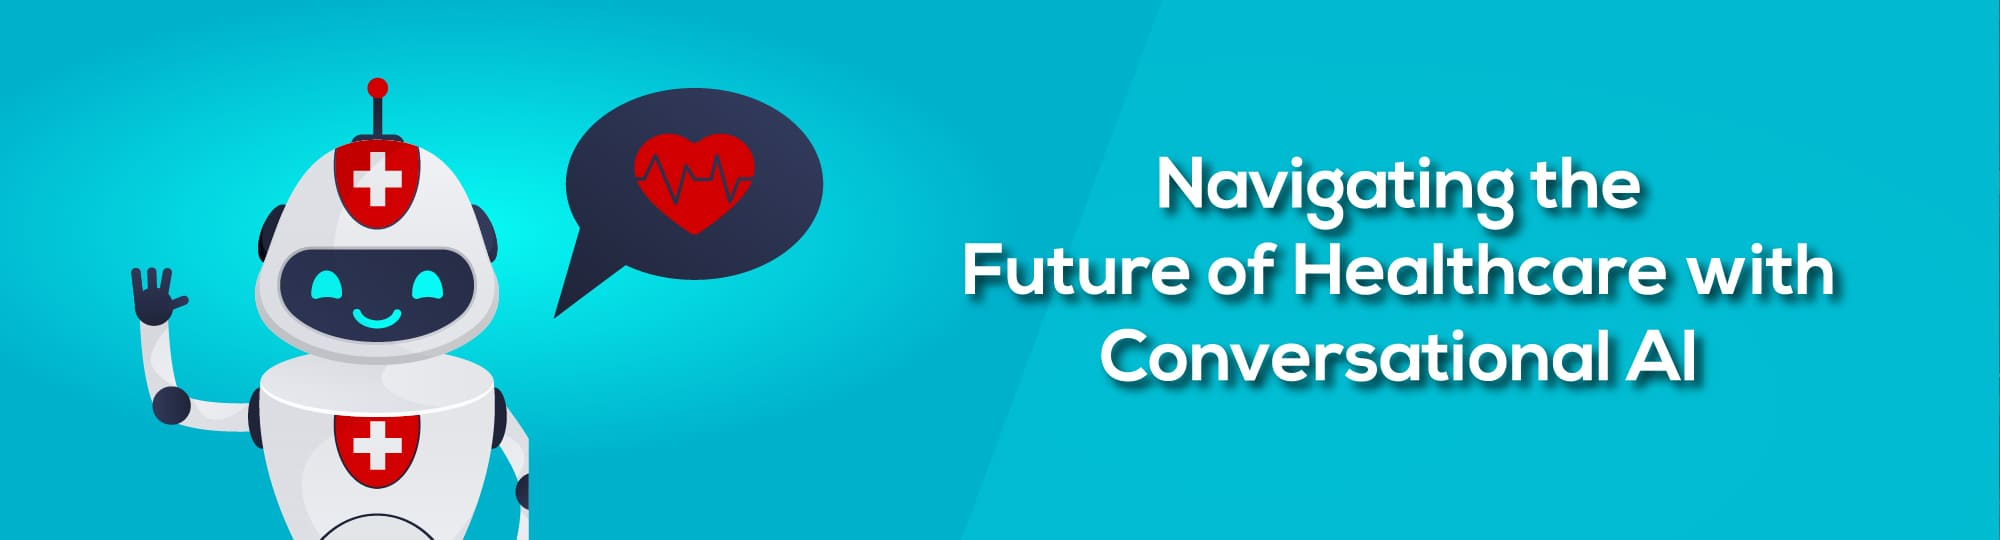 Navigating the Future of Healthcare with Conversational AI